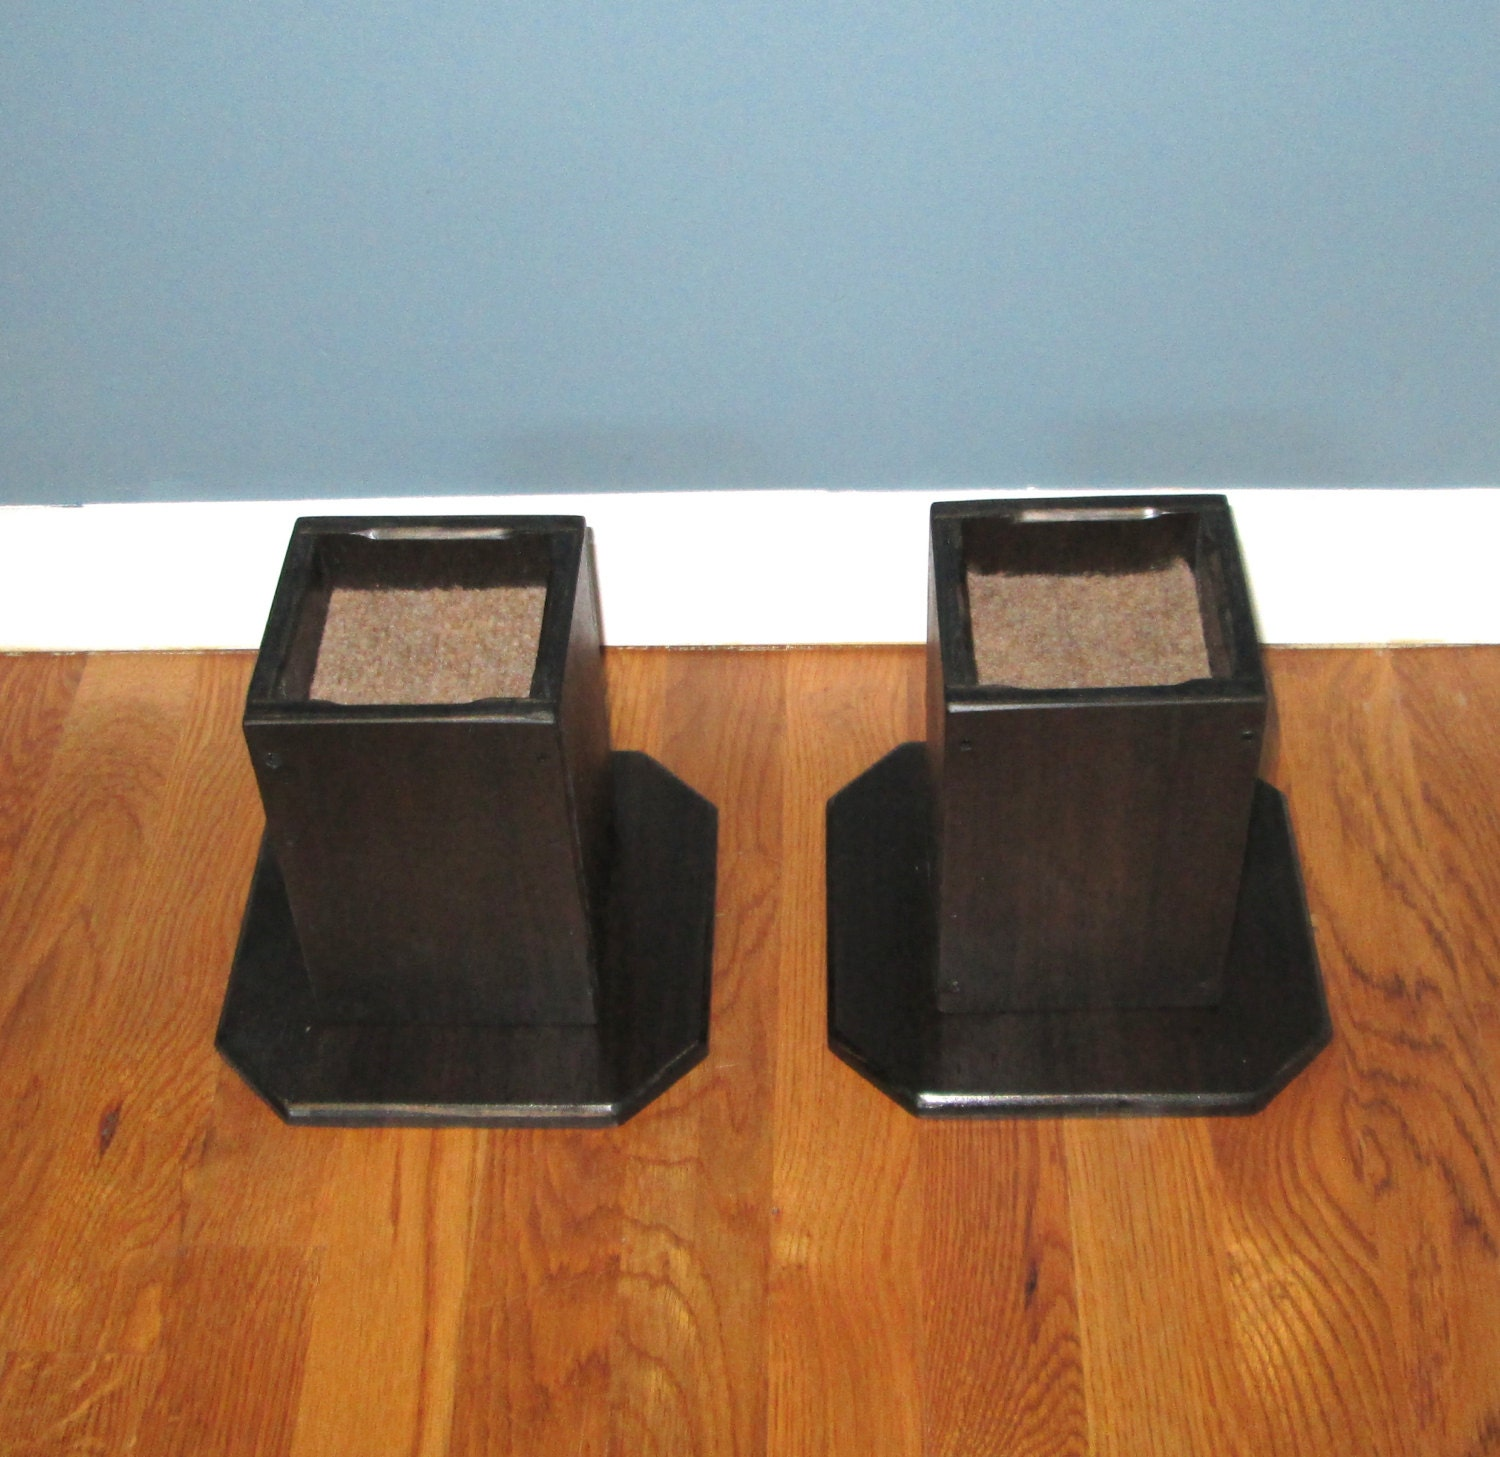 furniture risers 6 inch all wood construction by odyssey359